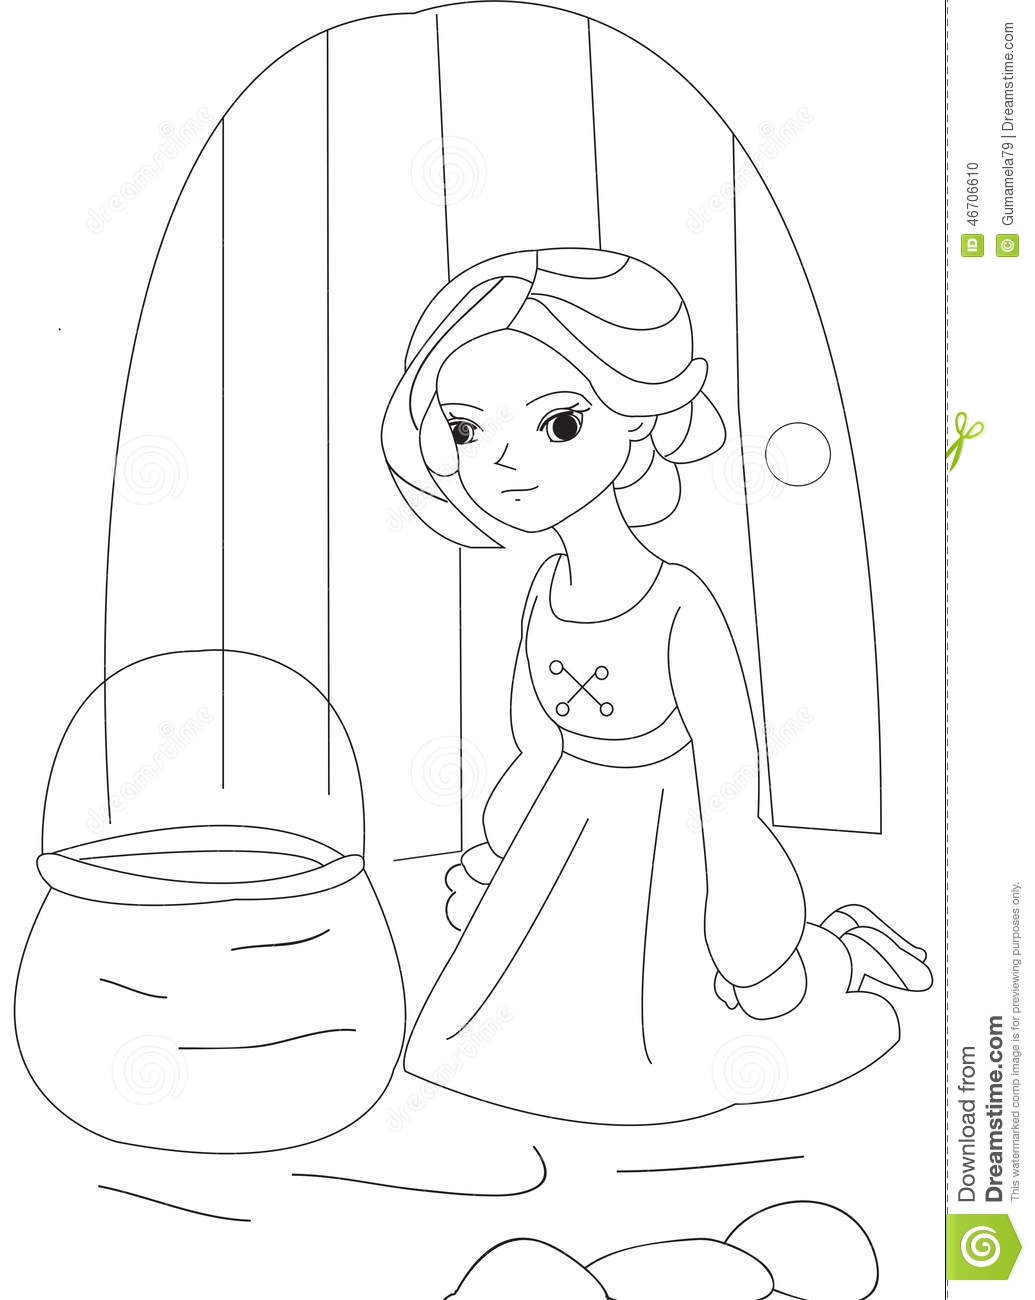 girl with a basket coloring page stock illustration illustration